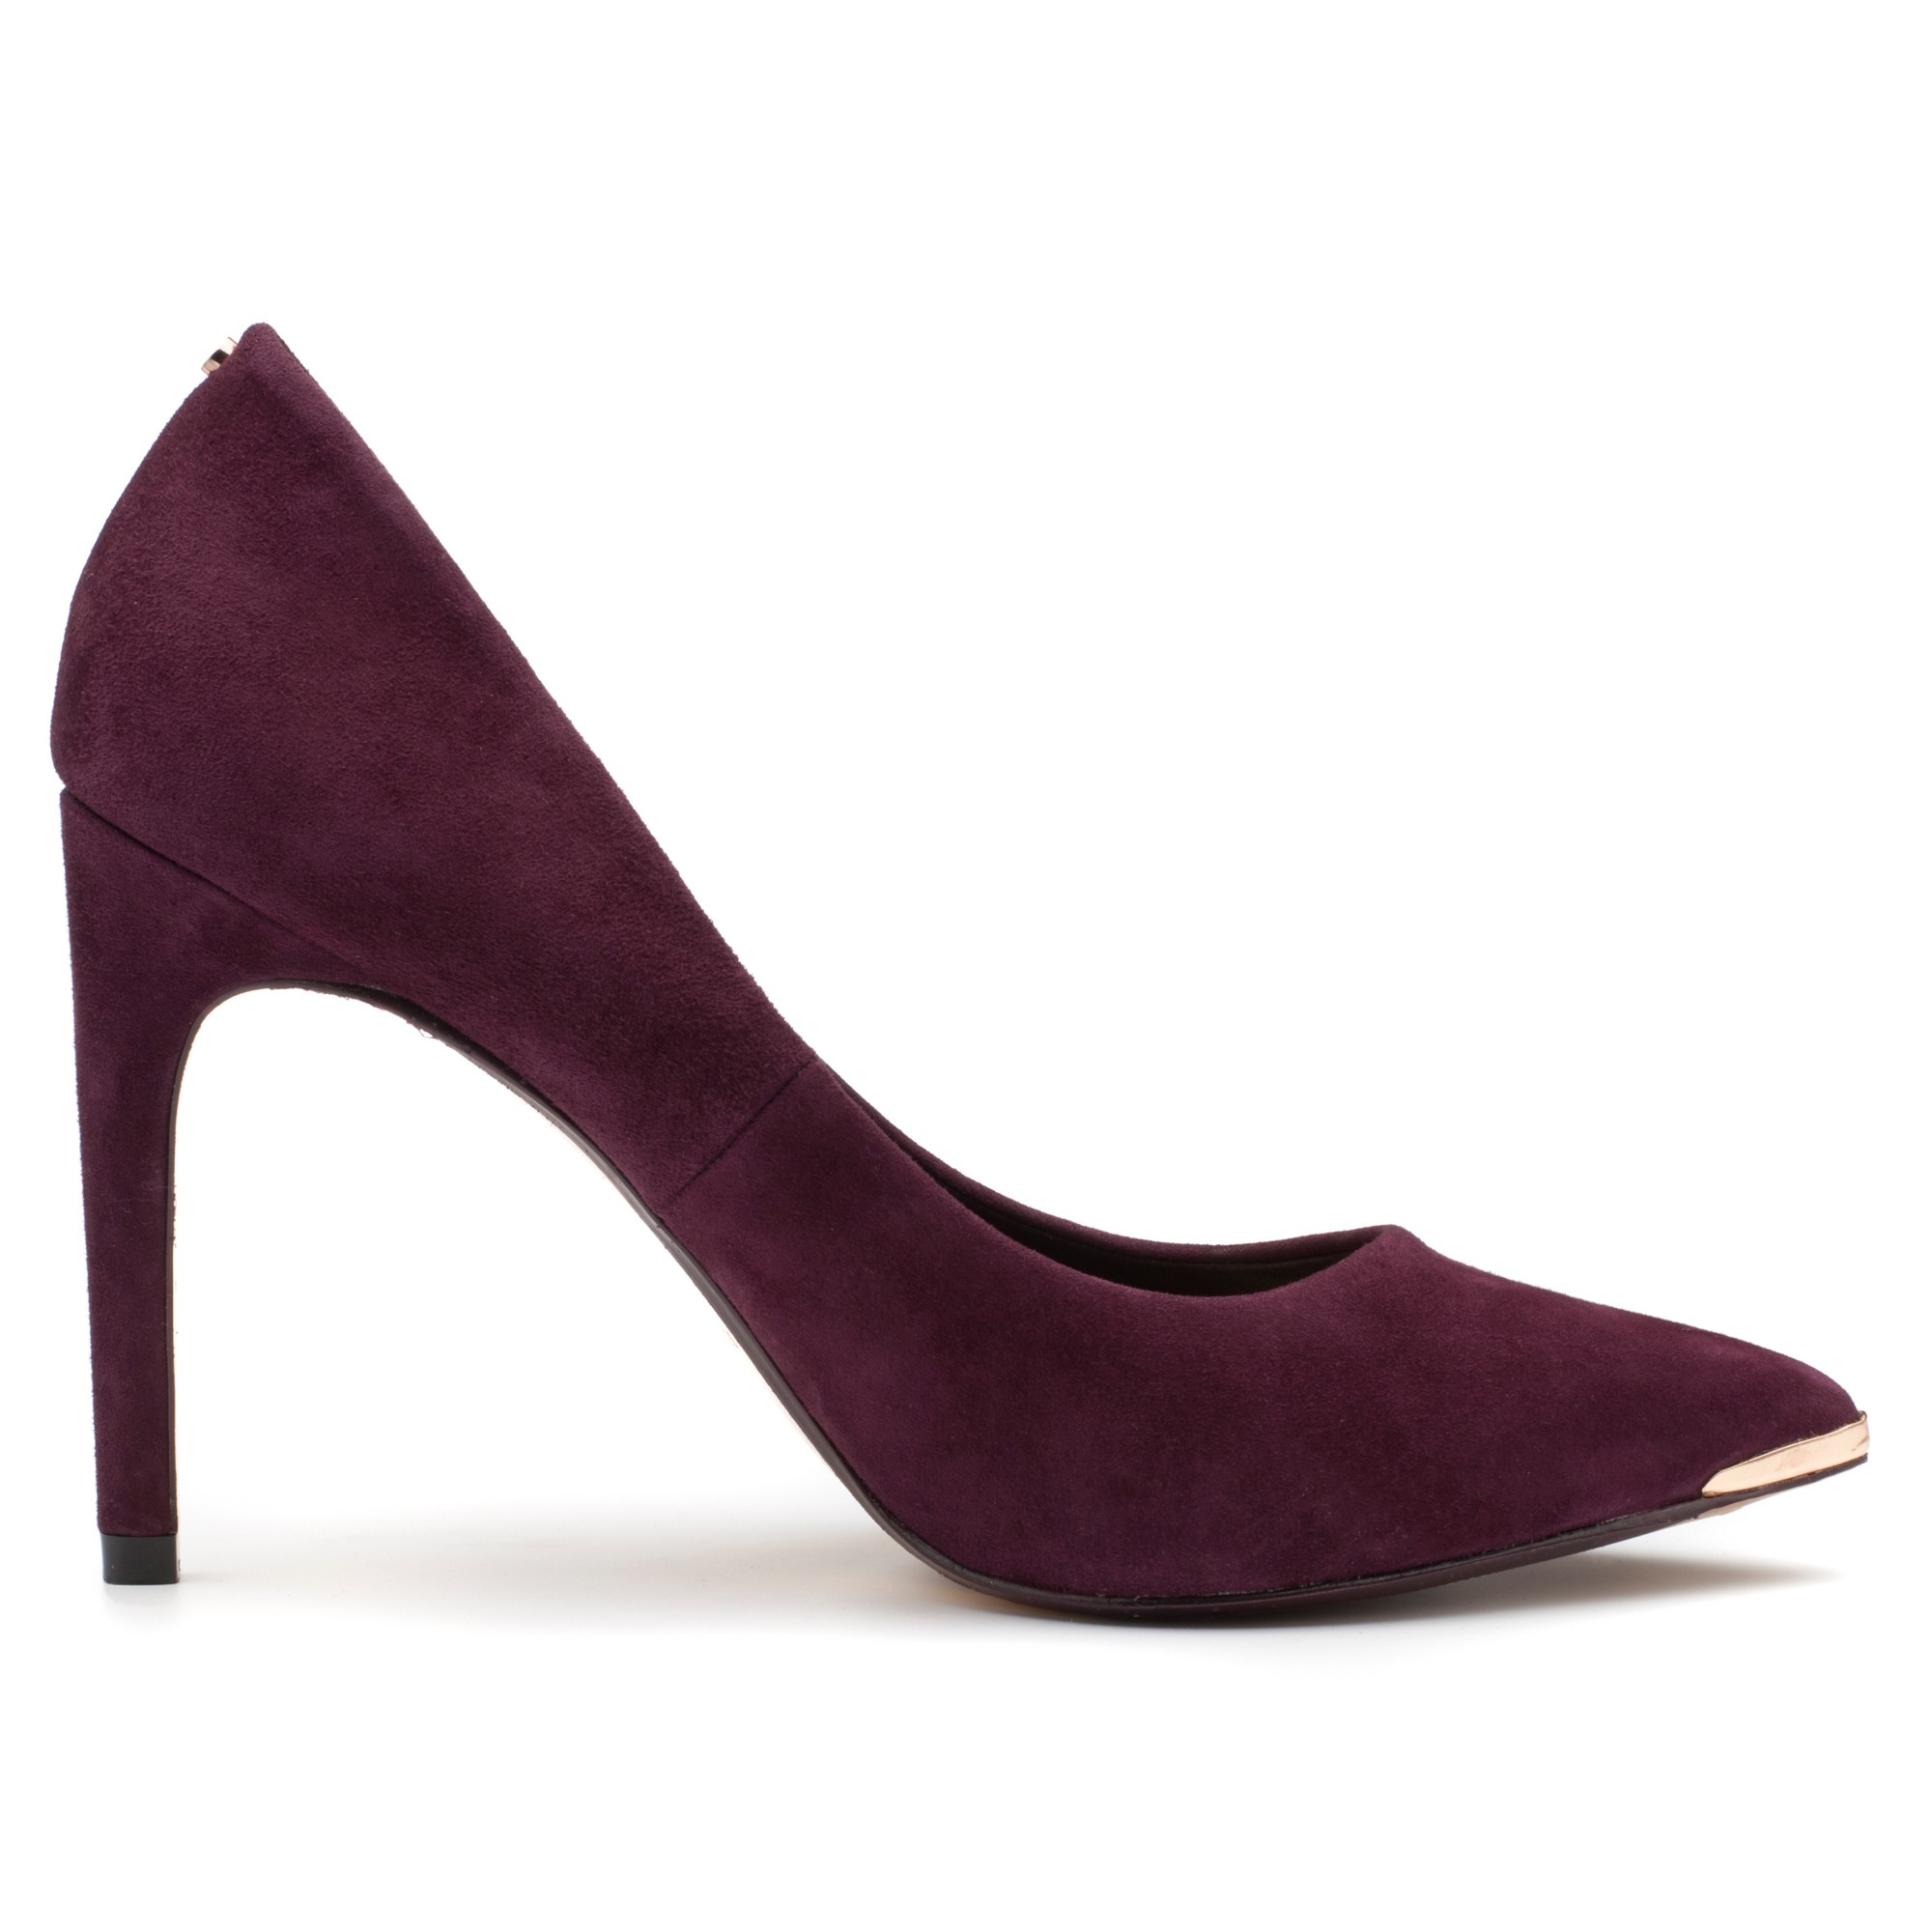 84e9add02535 Ted Baker Neevo Pointed Court Shoes in Purple - Lyst